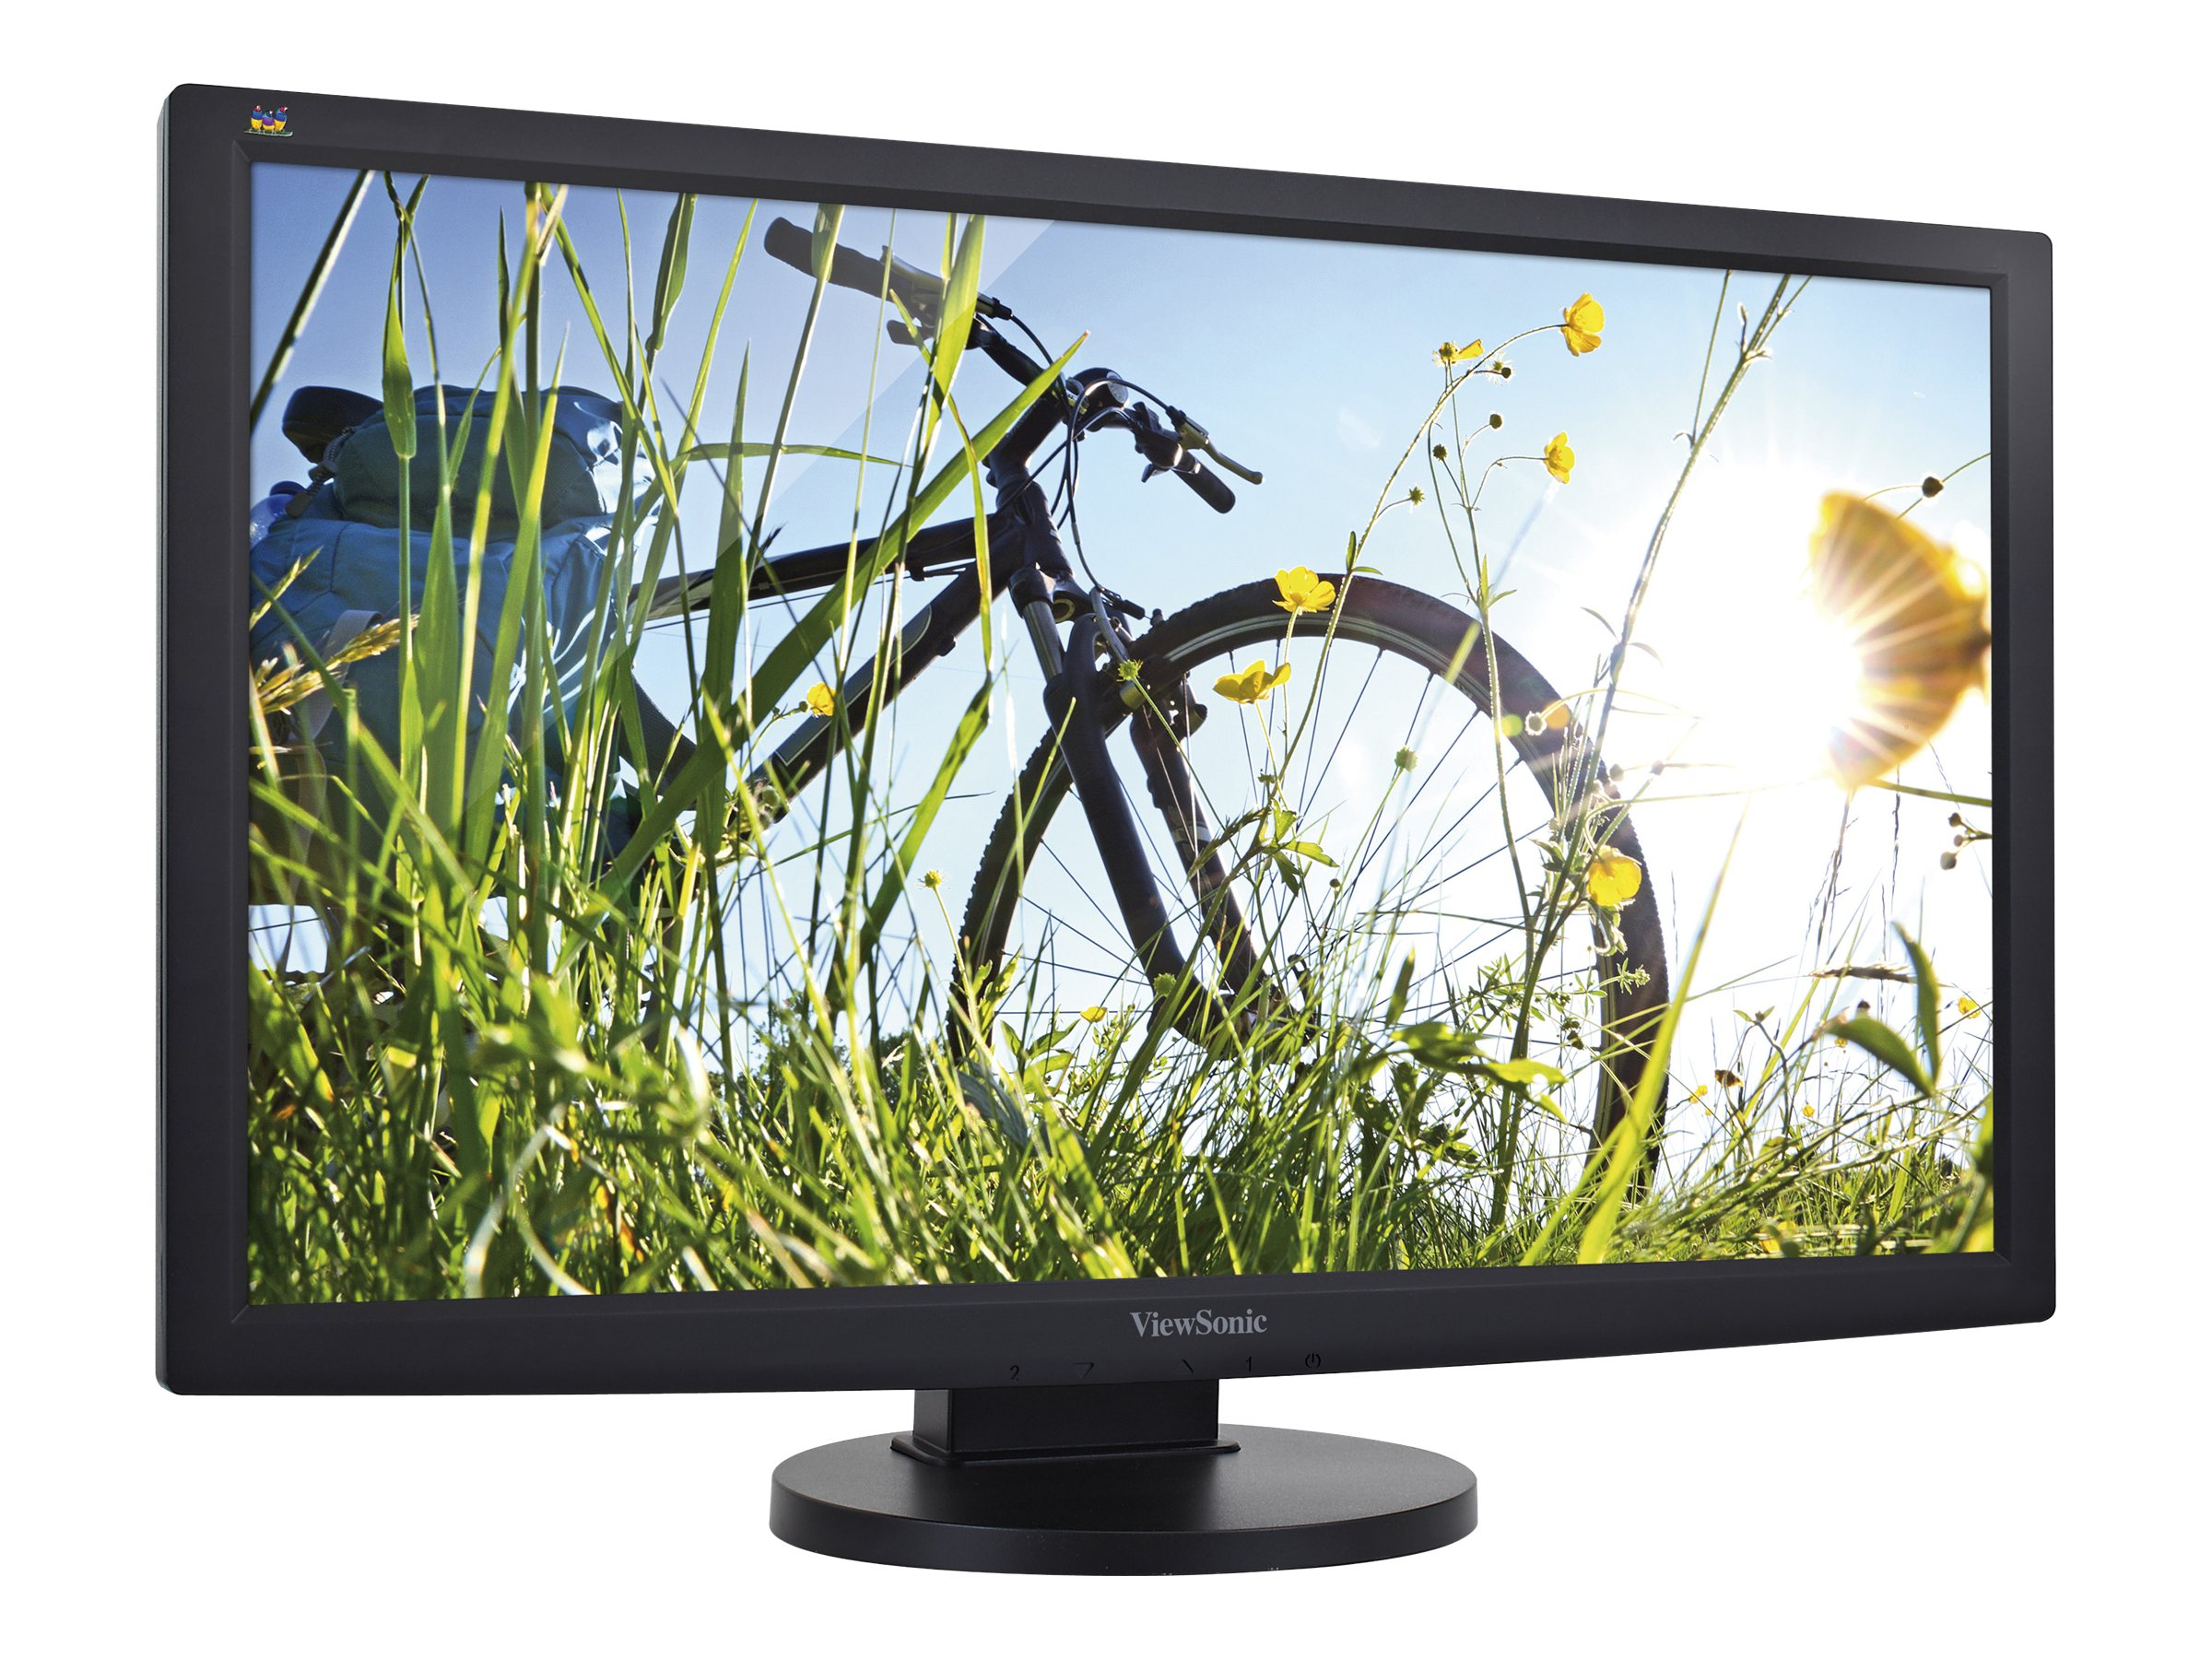 ViewSonic 23.6 VG2433SMH Full HD LED-LCD Monitor, Black, VG2433SMH